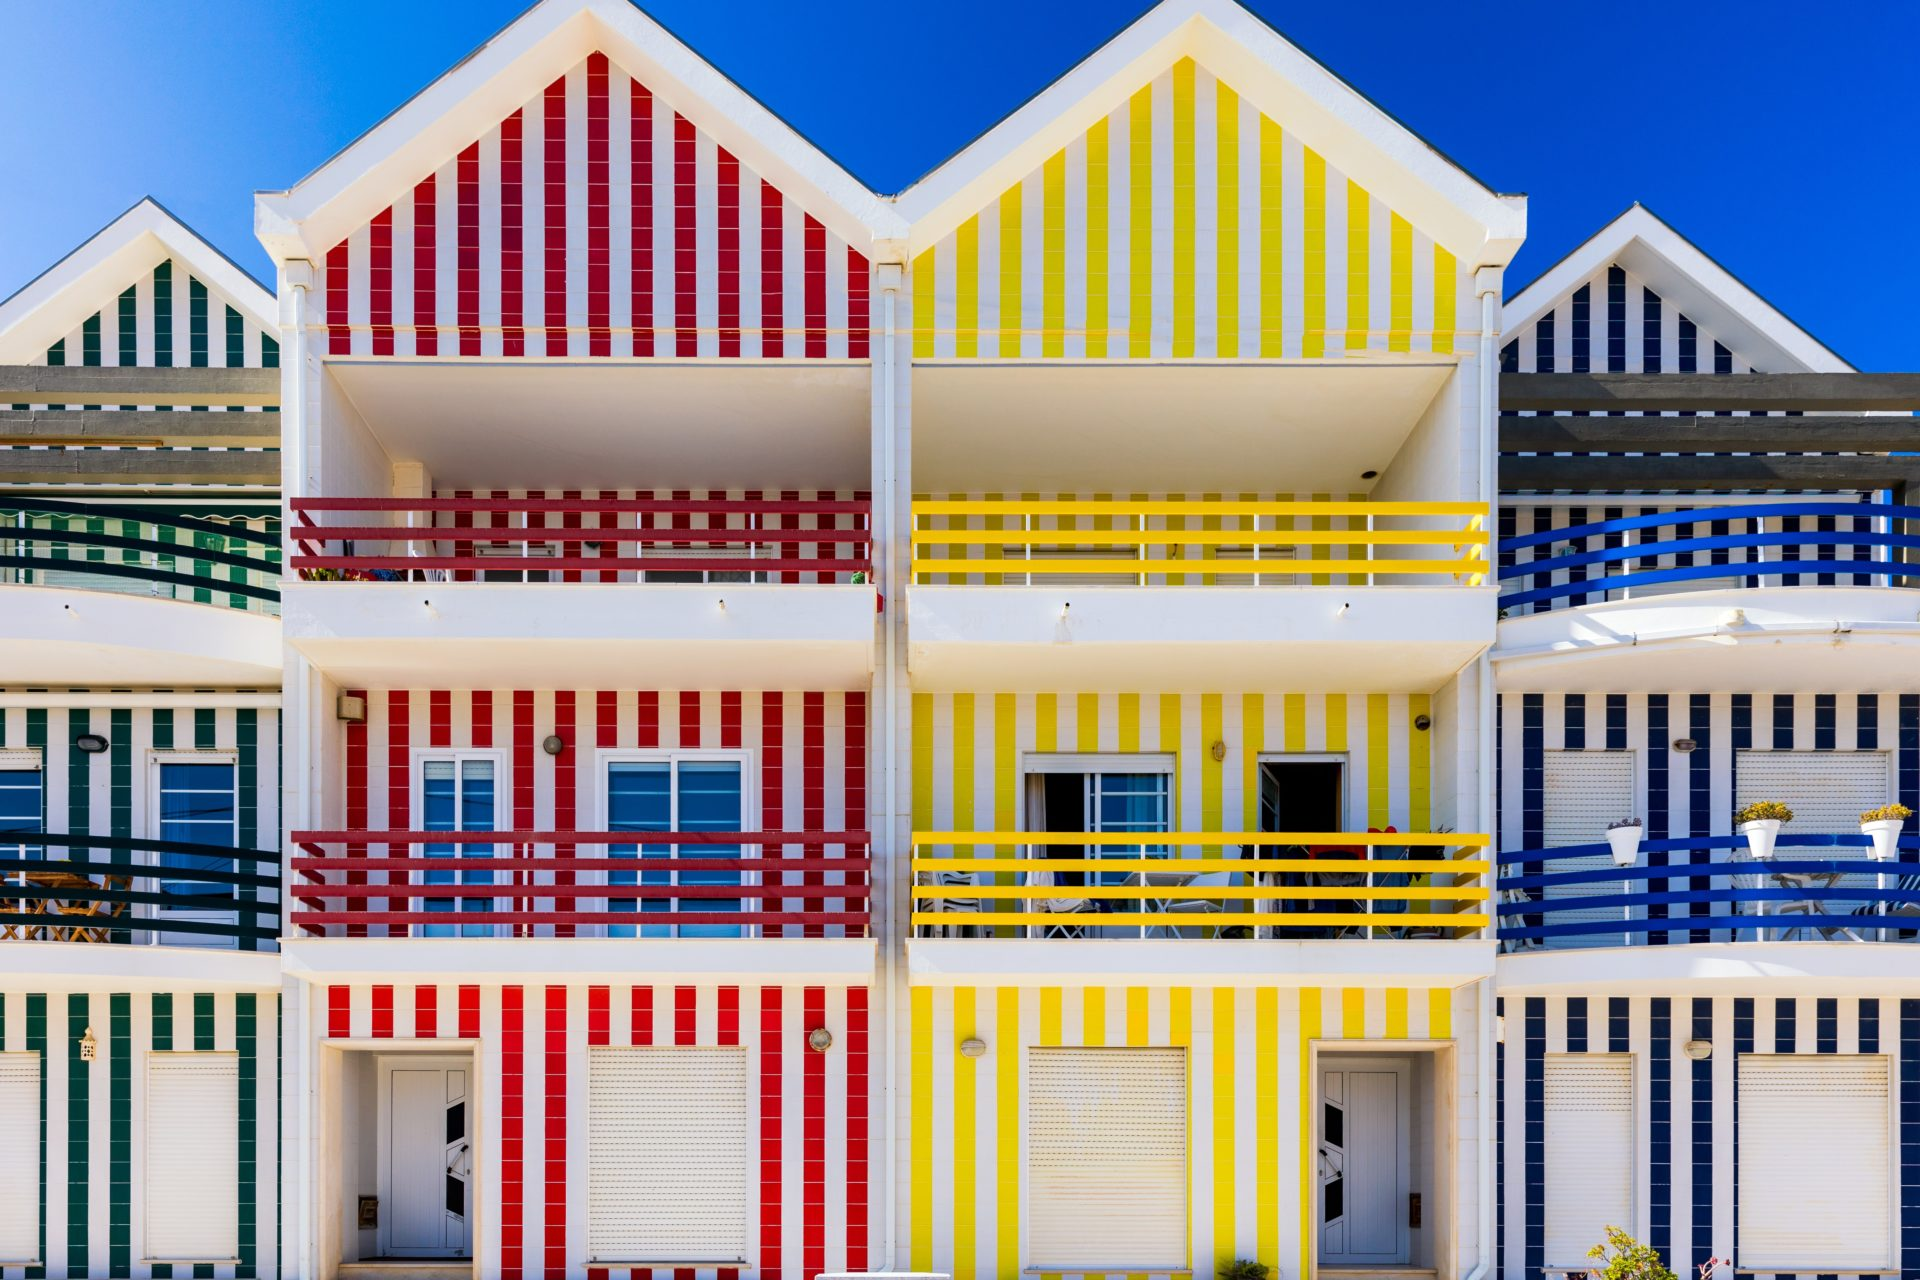 Facades of colorful houses in Costa Nova, Aveiro, Portugal.